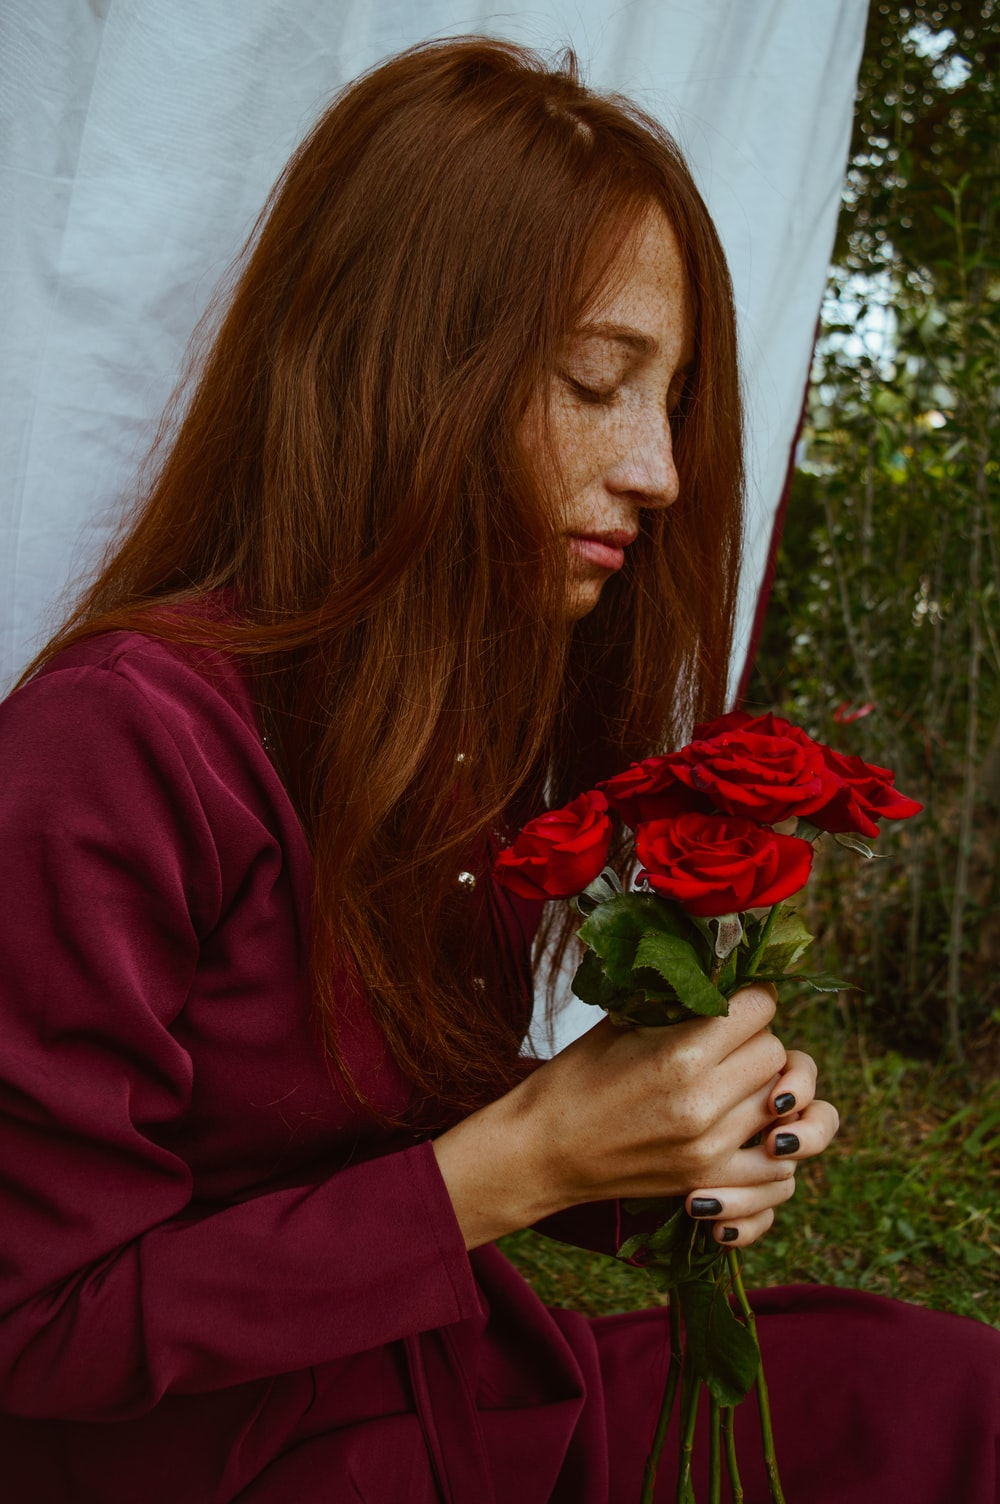 woman in red long sleeve shirt holding red rose